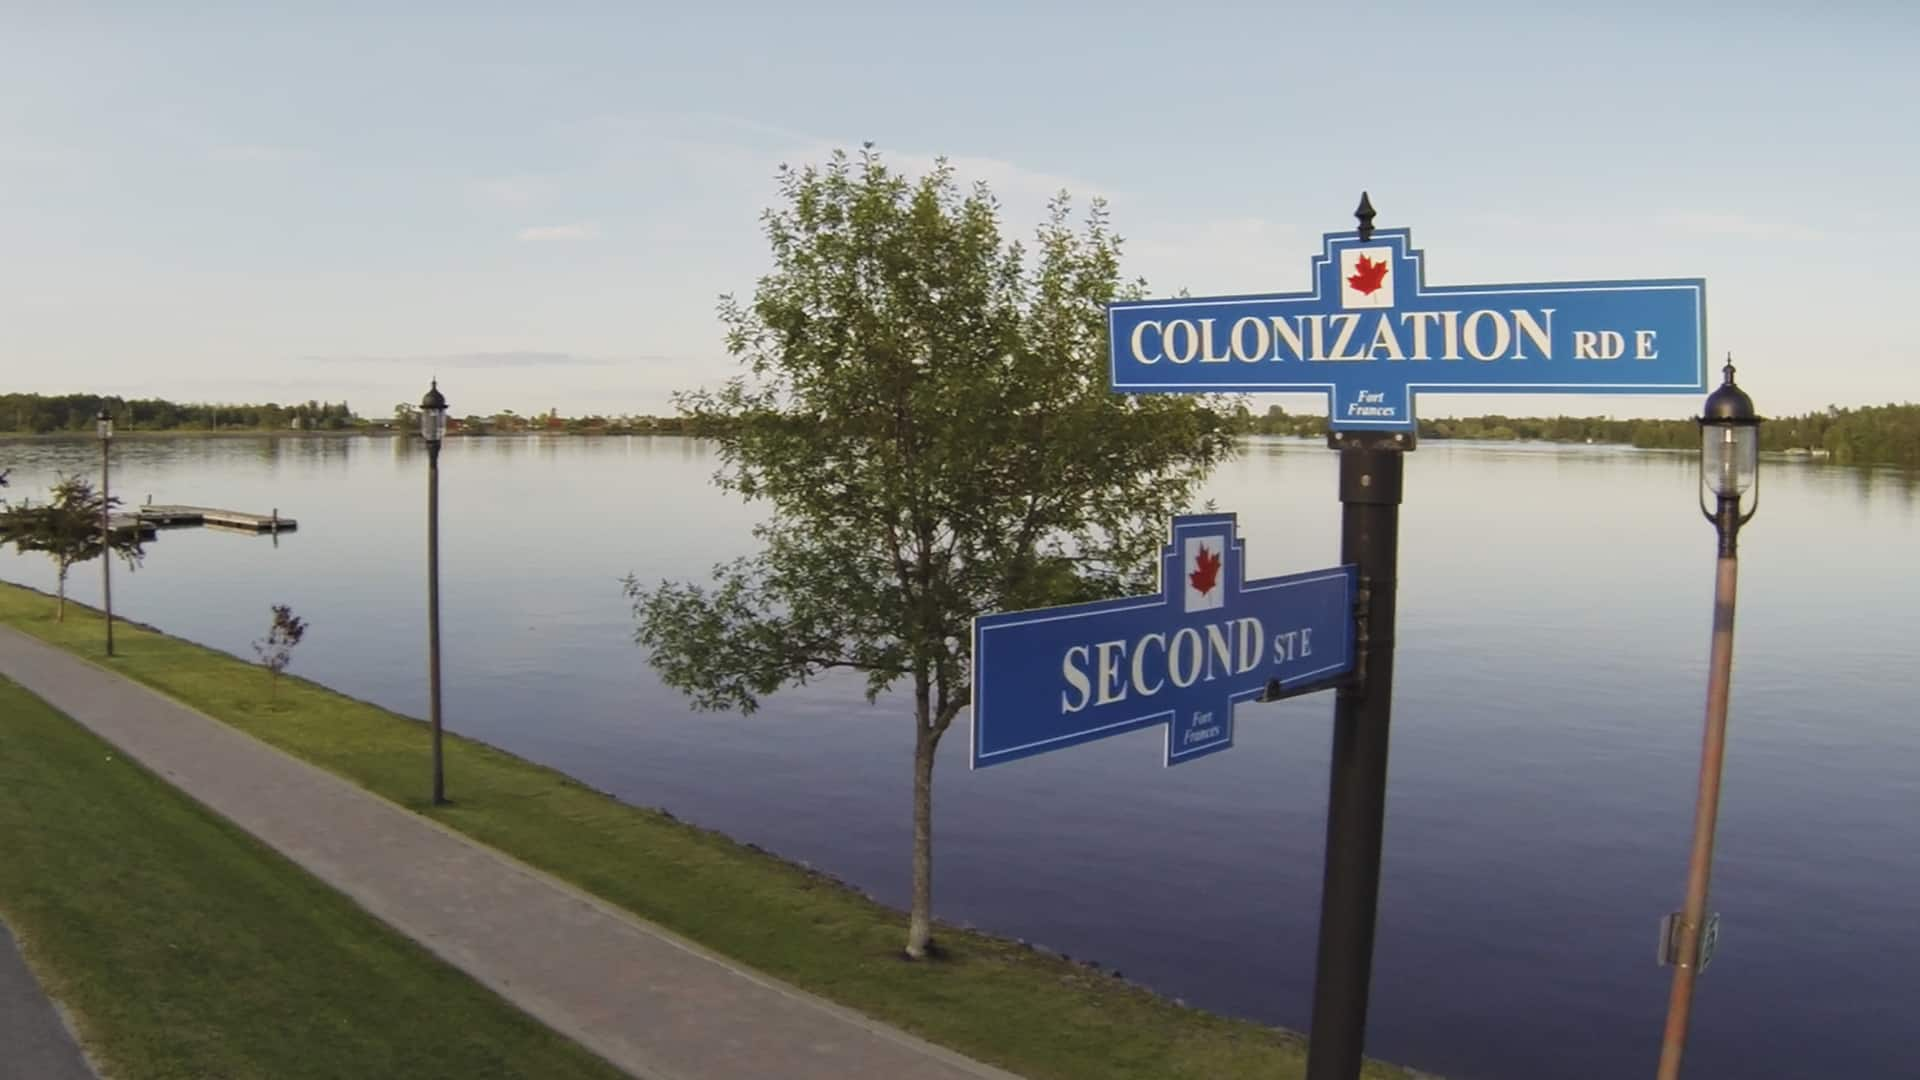 The Documentary 'Colonization Road' Is About Real, Actual Roads